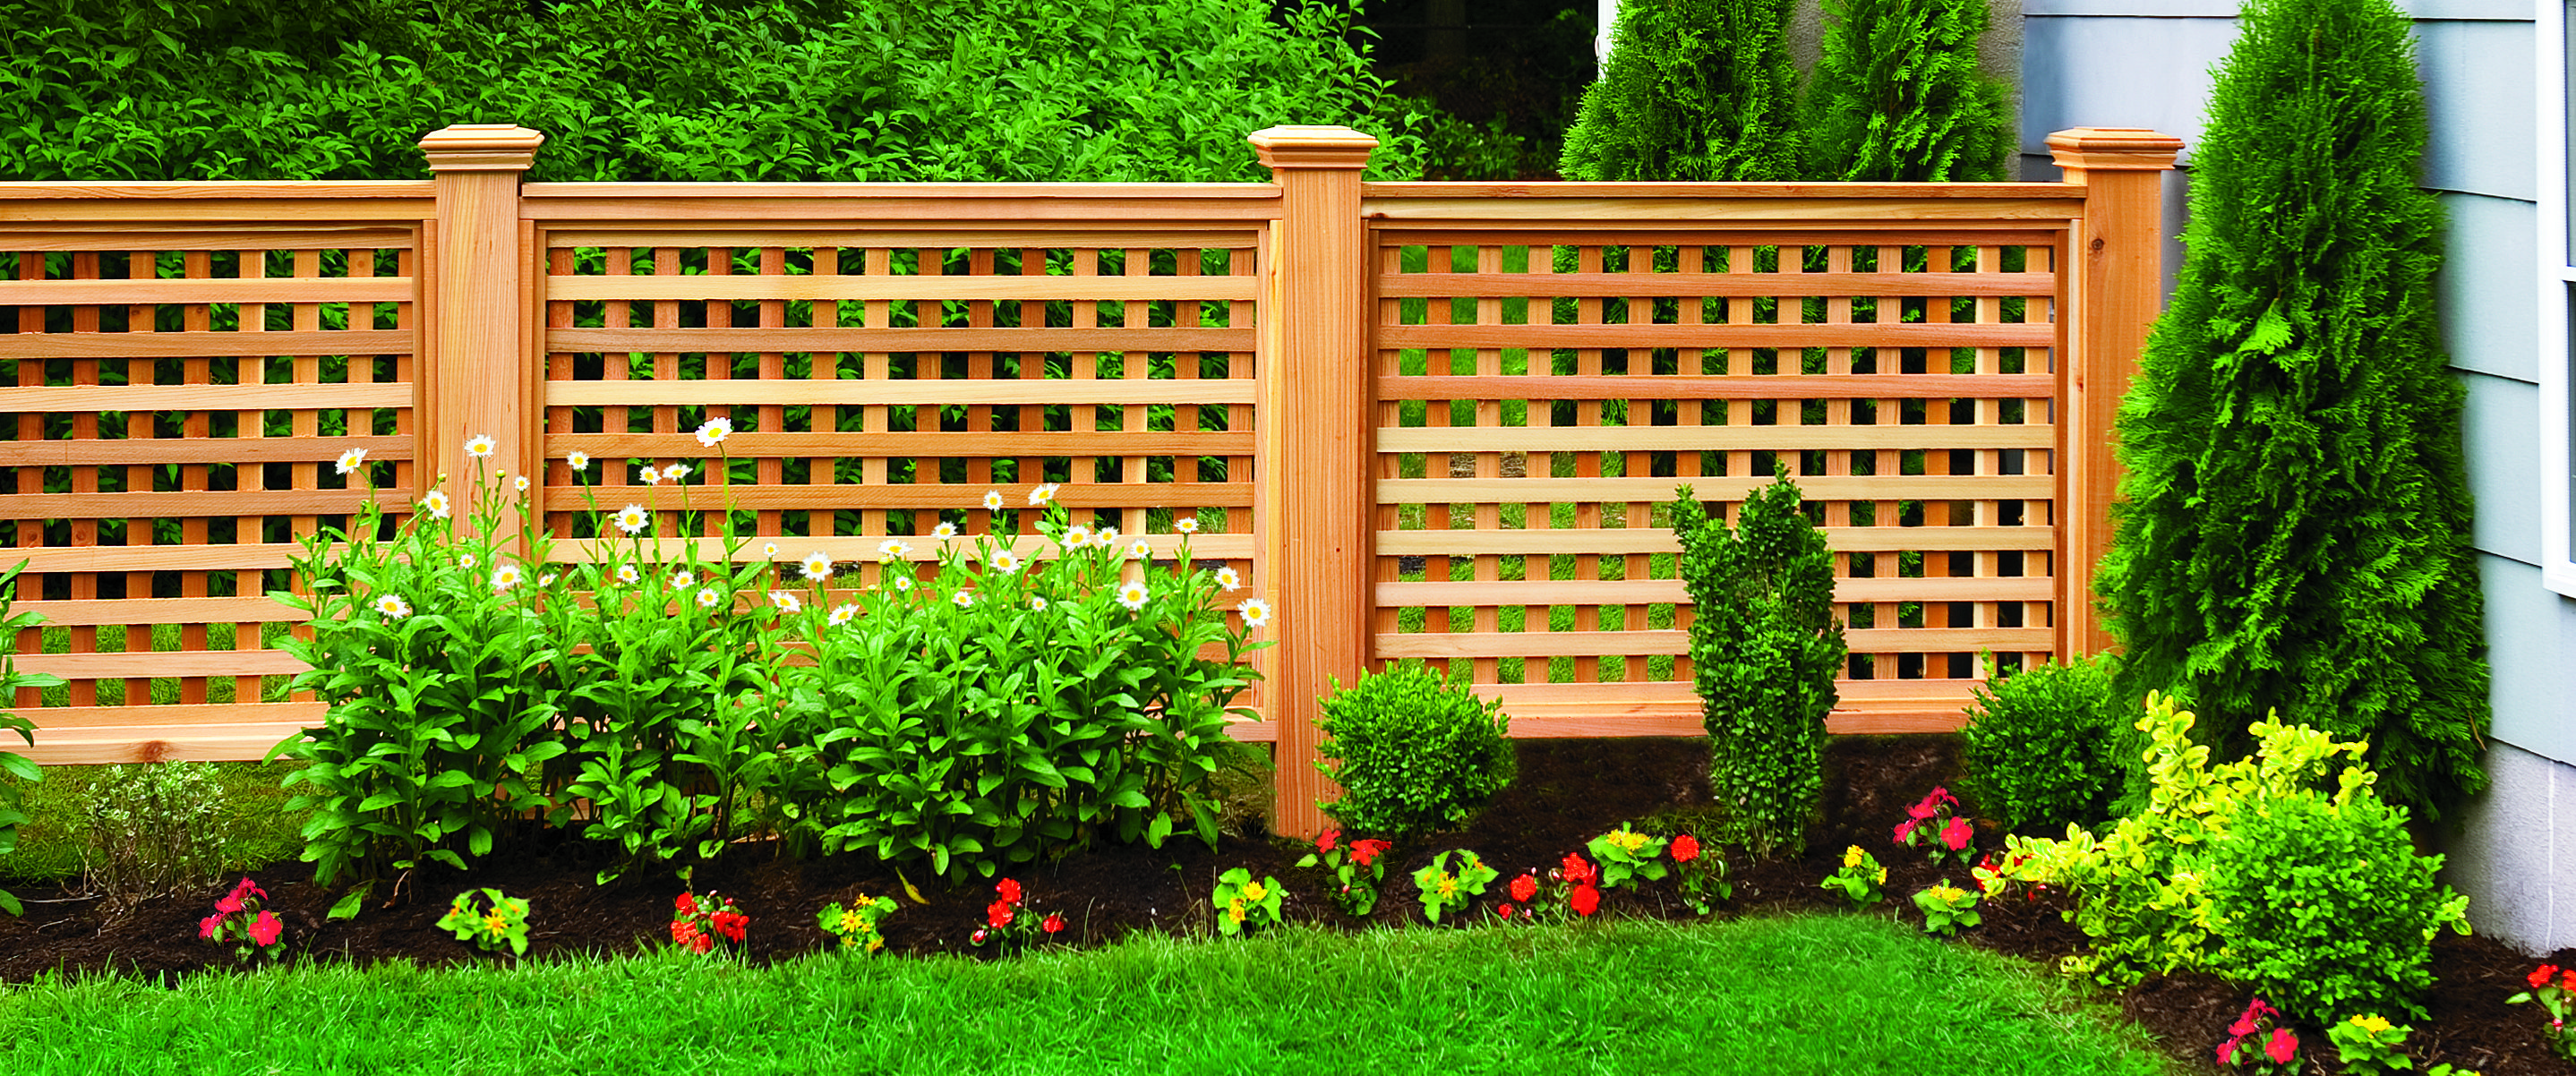 How to Build a Wood Lattice Fence | Wood fence design